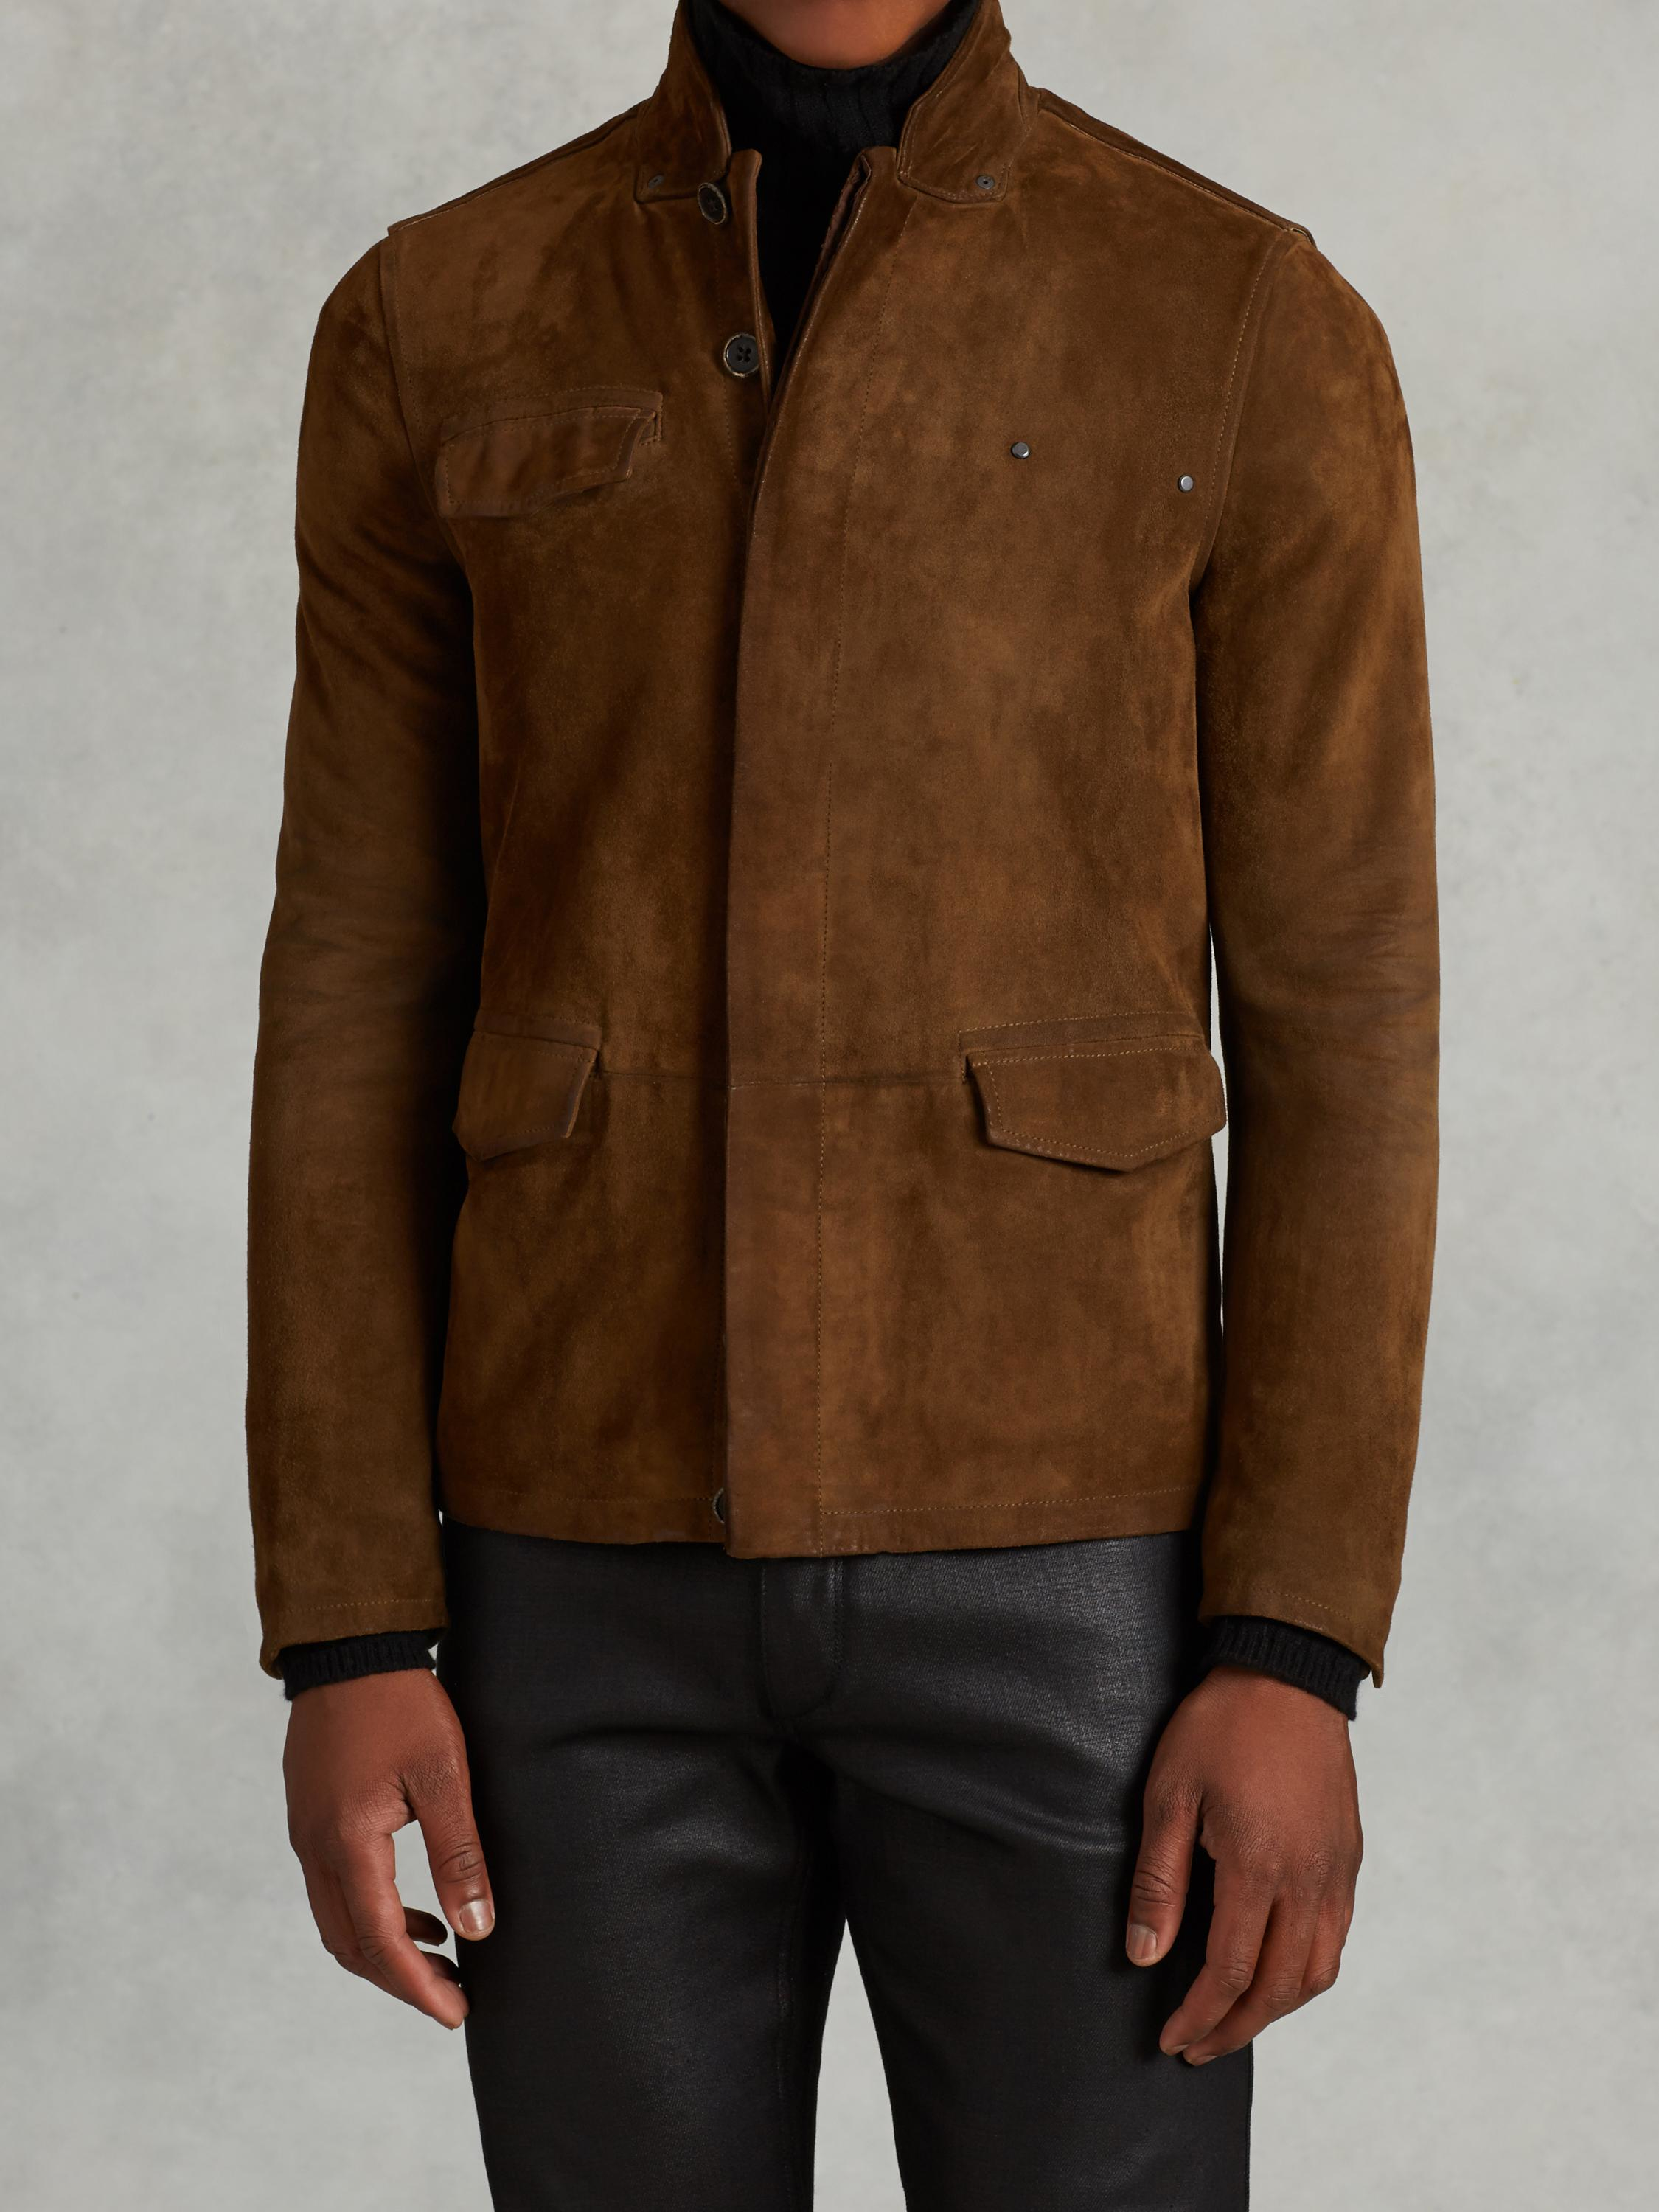 John varvatos Suede Jacket With Rivet Detail in Brown for Men | Lyst